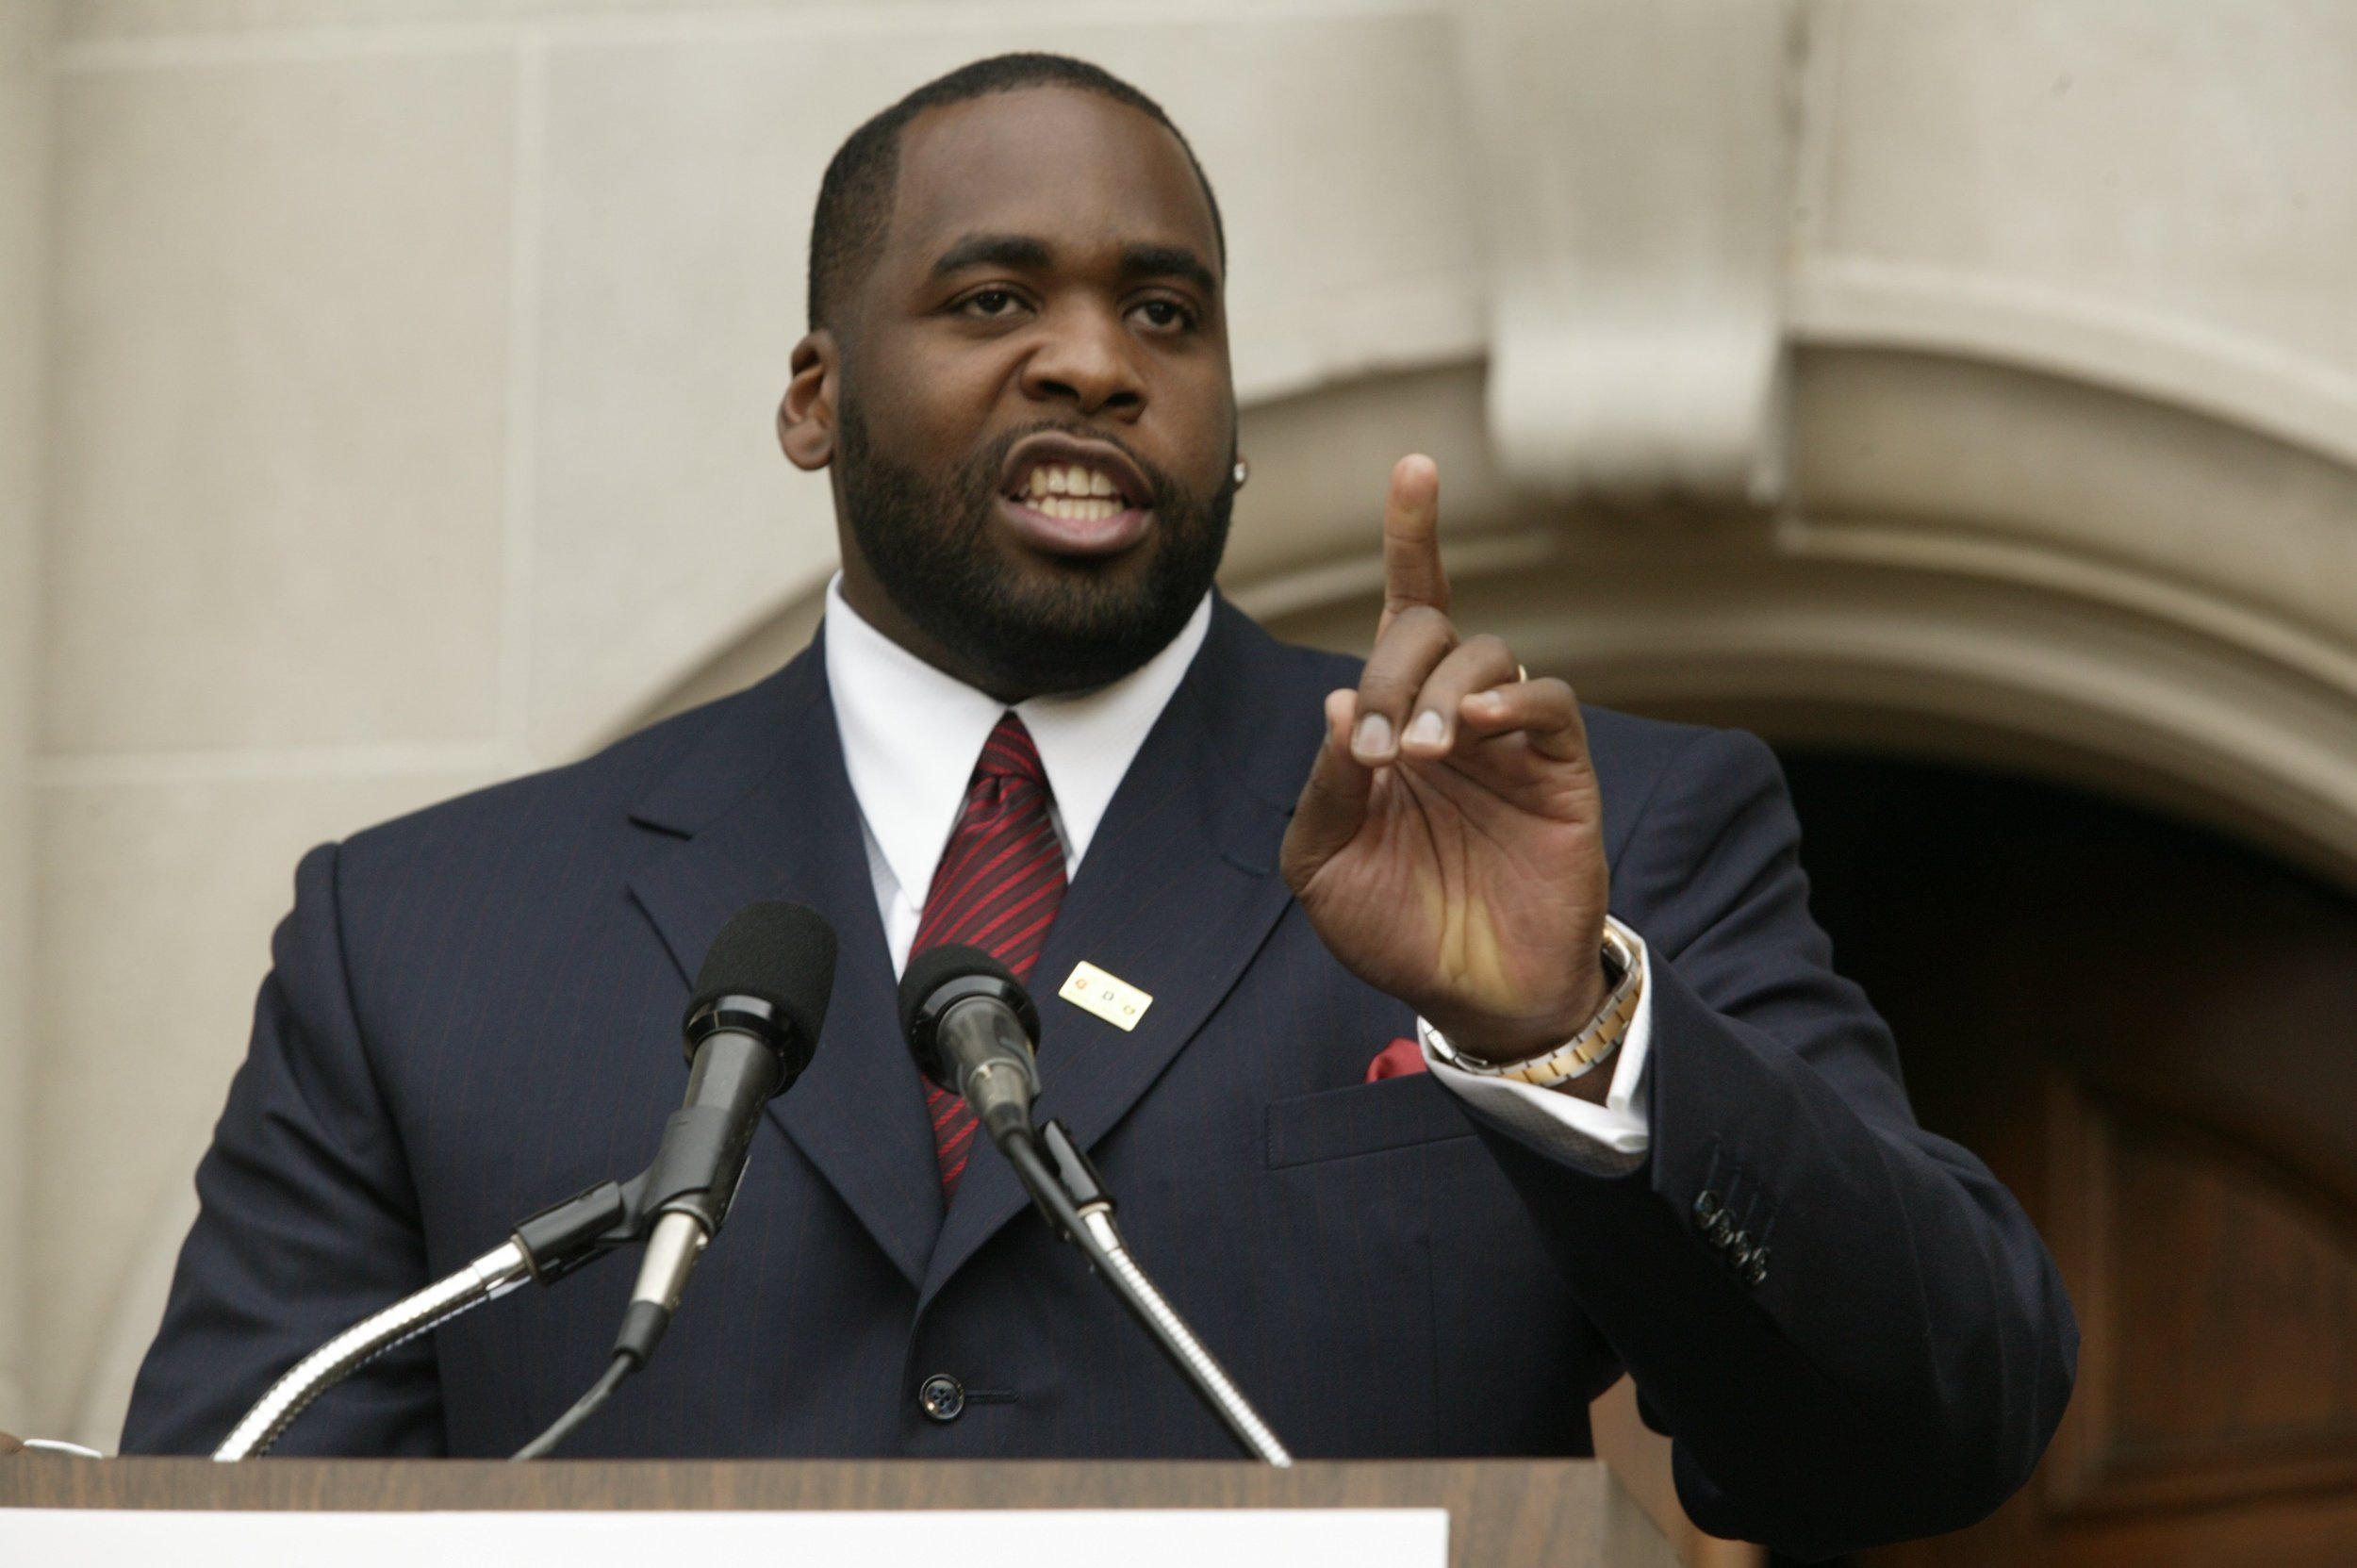 Detroit mayor Kwame Kilpatrick addresses the press in front of the Manoogian Mansion in 2003. During the press conference, Kilpatrick defended his recent firing of Gary Brown and denied having a party at the mayoral mansion.  Courtesy of the Detroit Free Press.